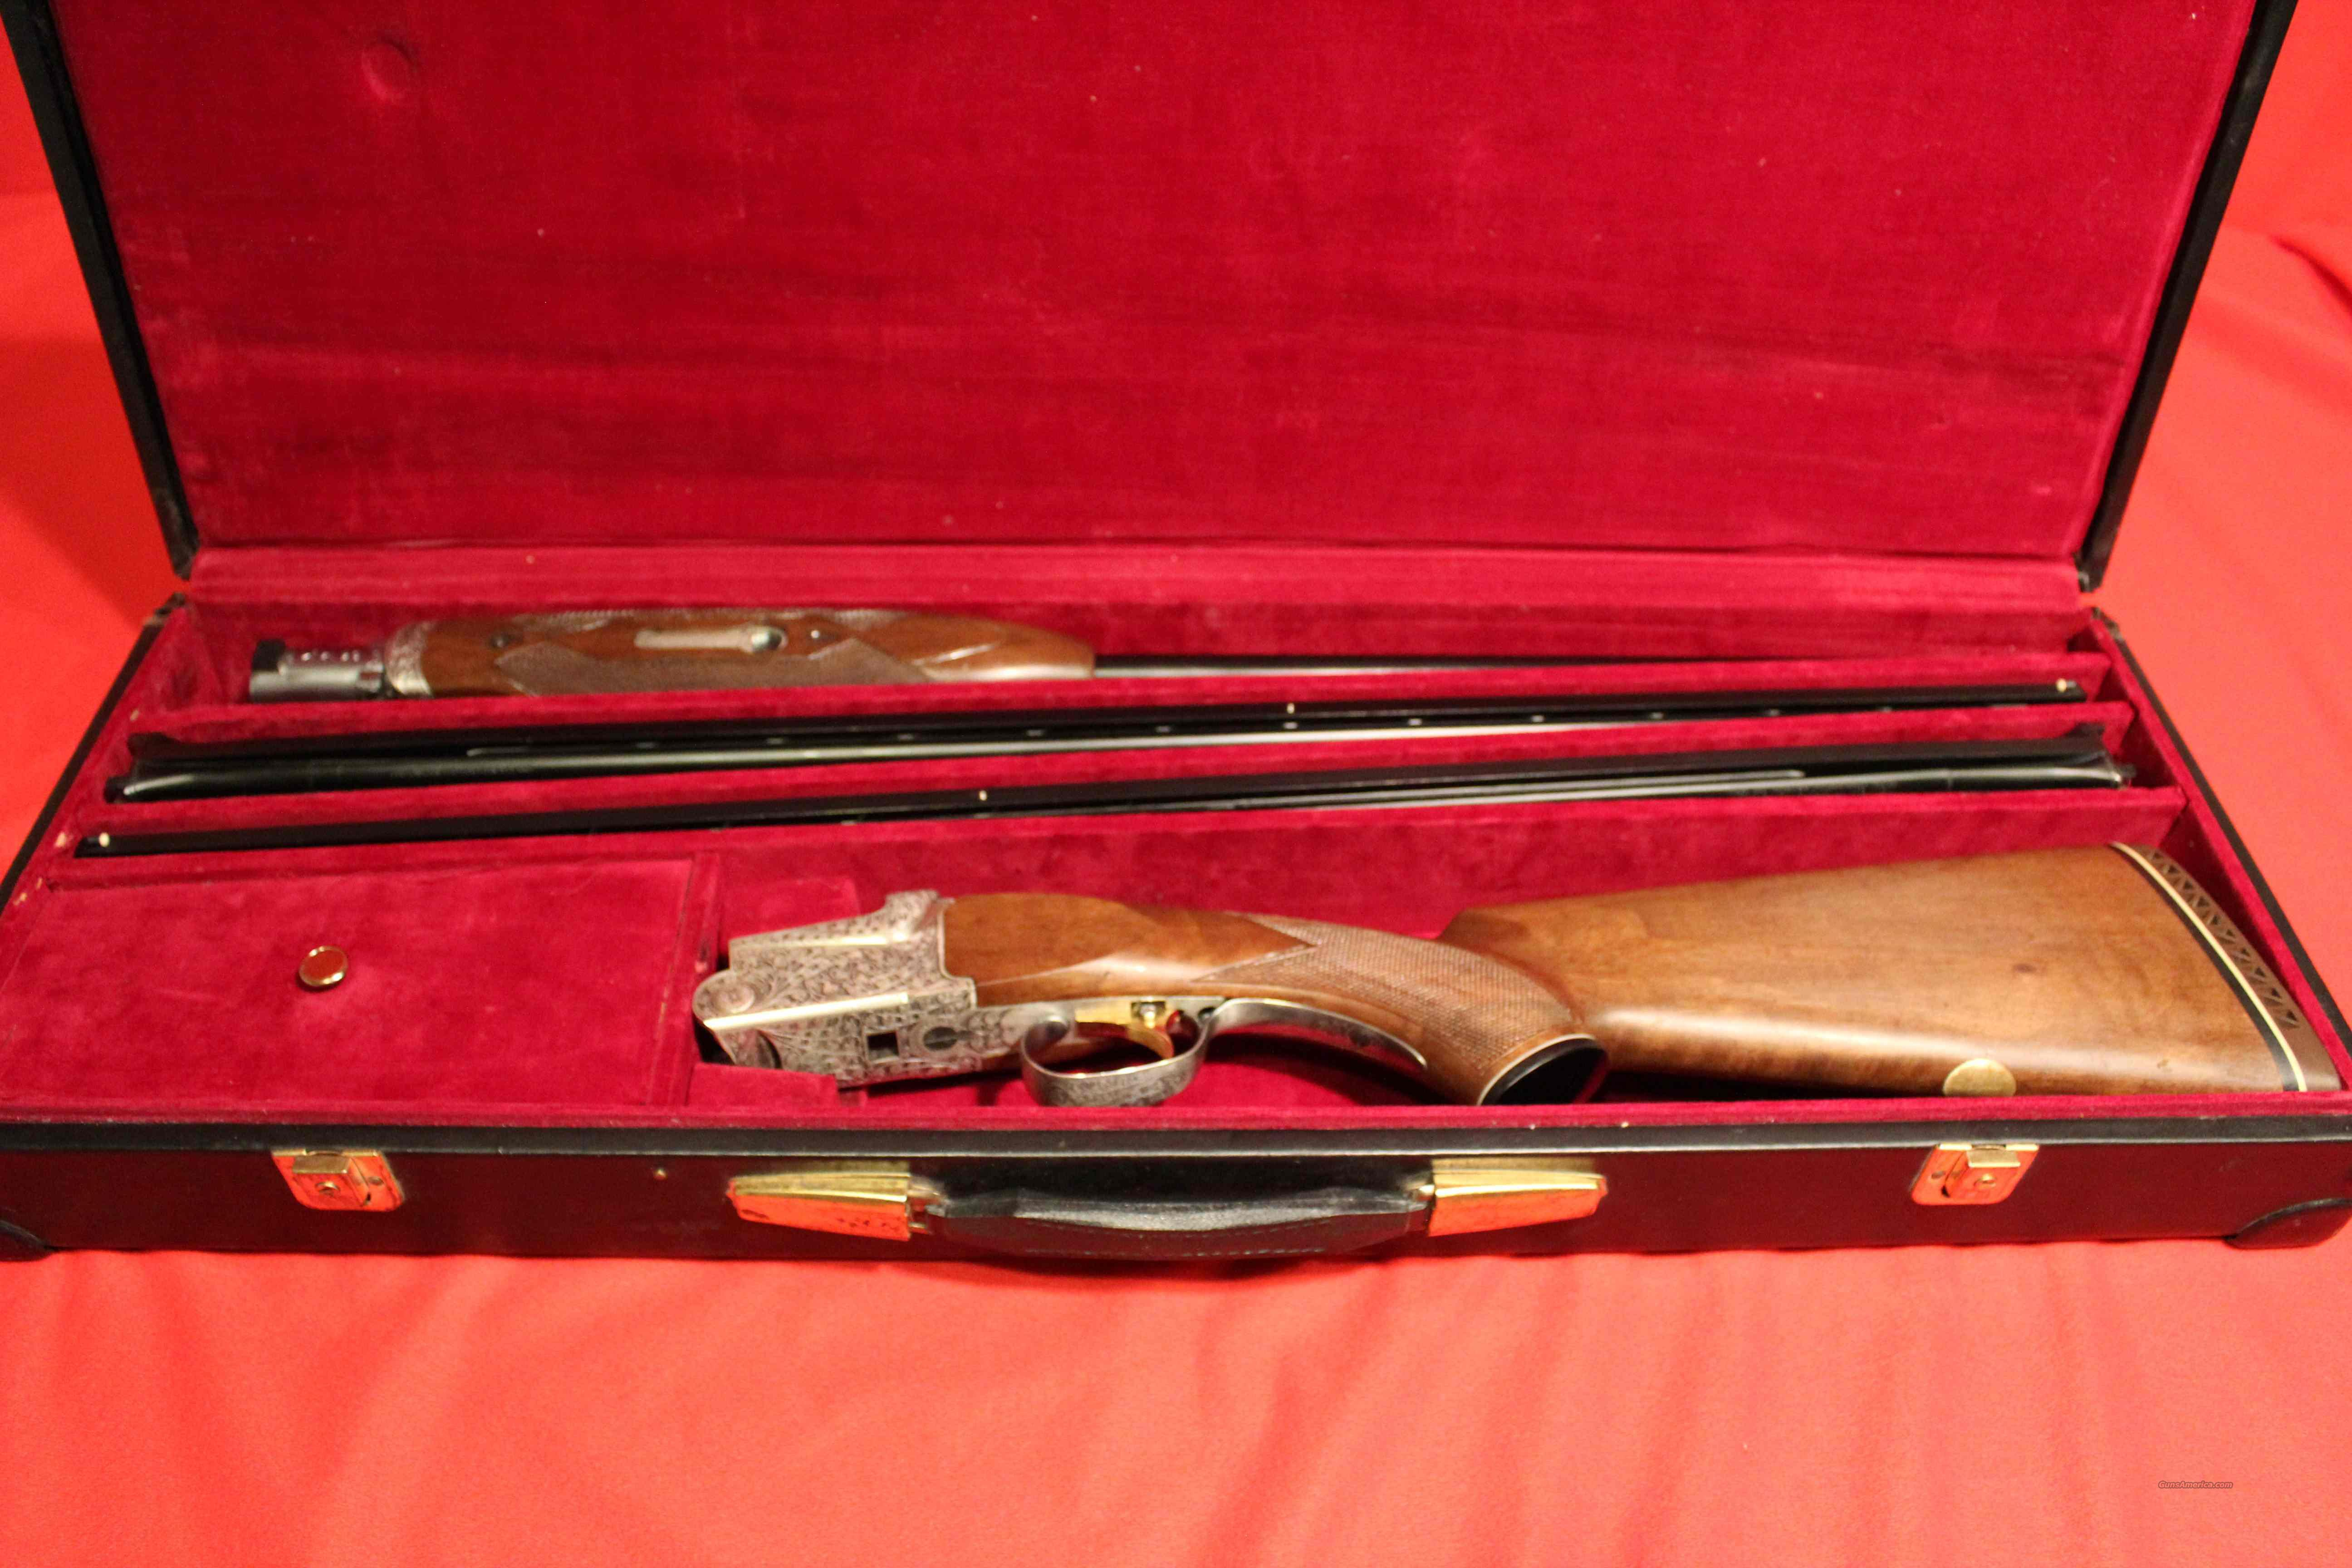 SKB Model 600 Skeet Grade Combo Set, 20/28/410 w/ Original Case   Guns > Shotguns > SKB Shotguns > Trap/Skeet